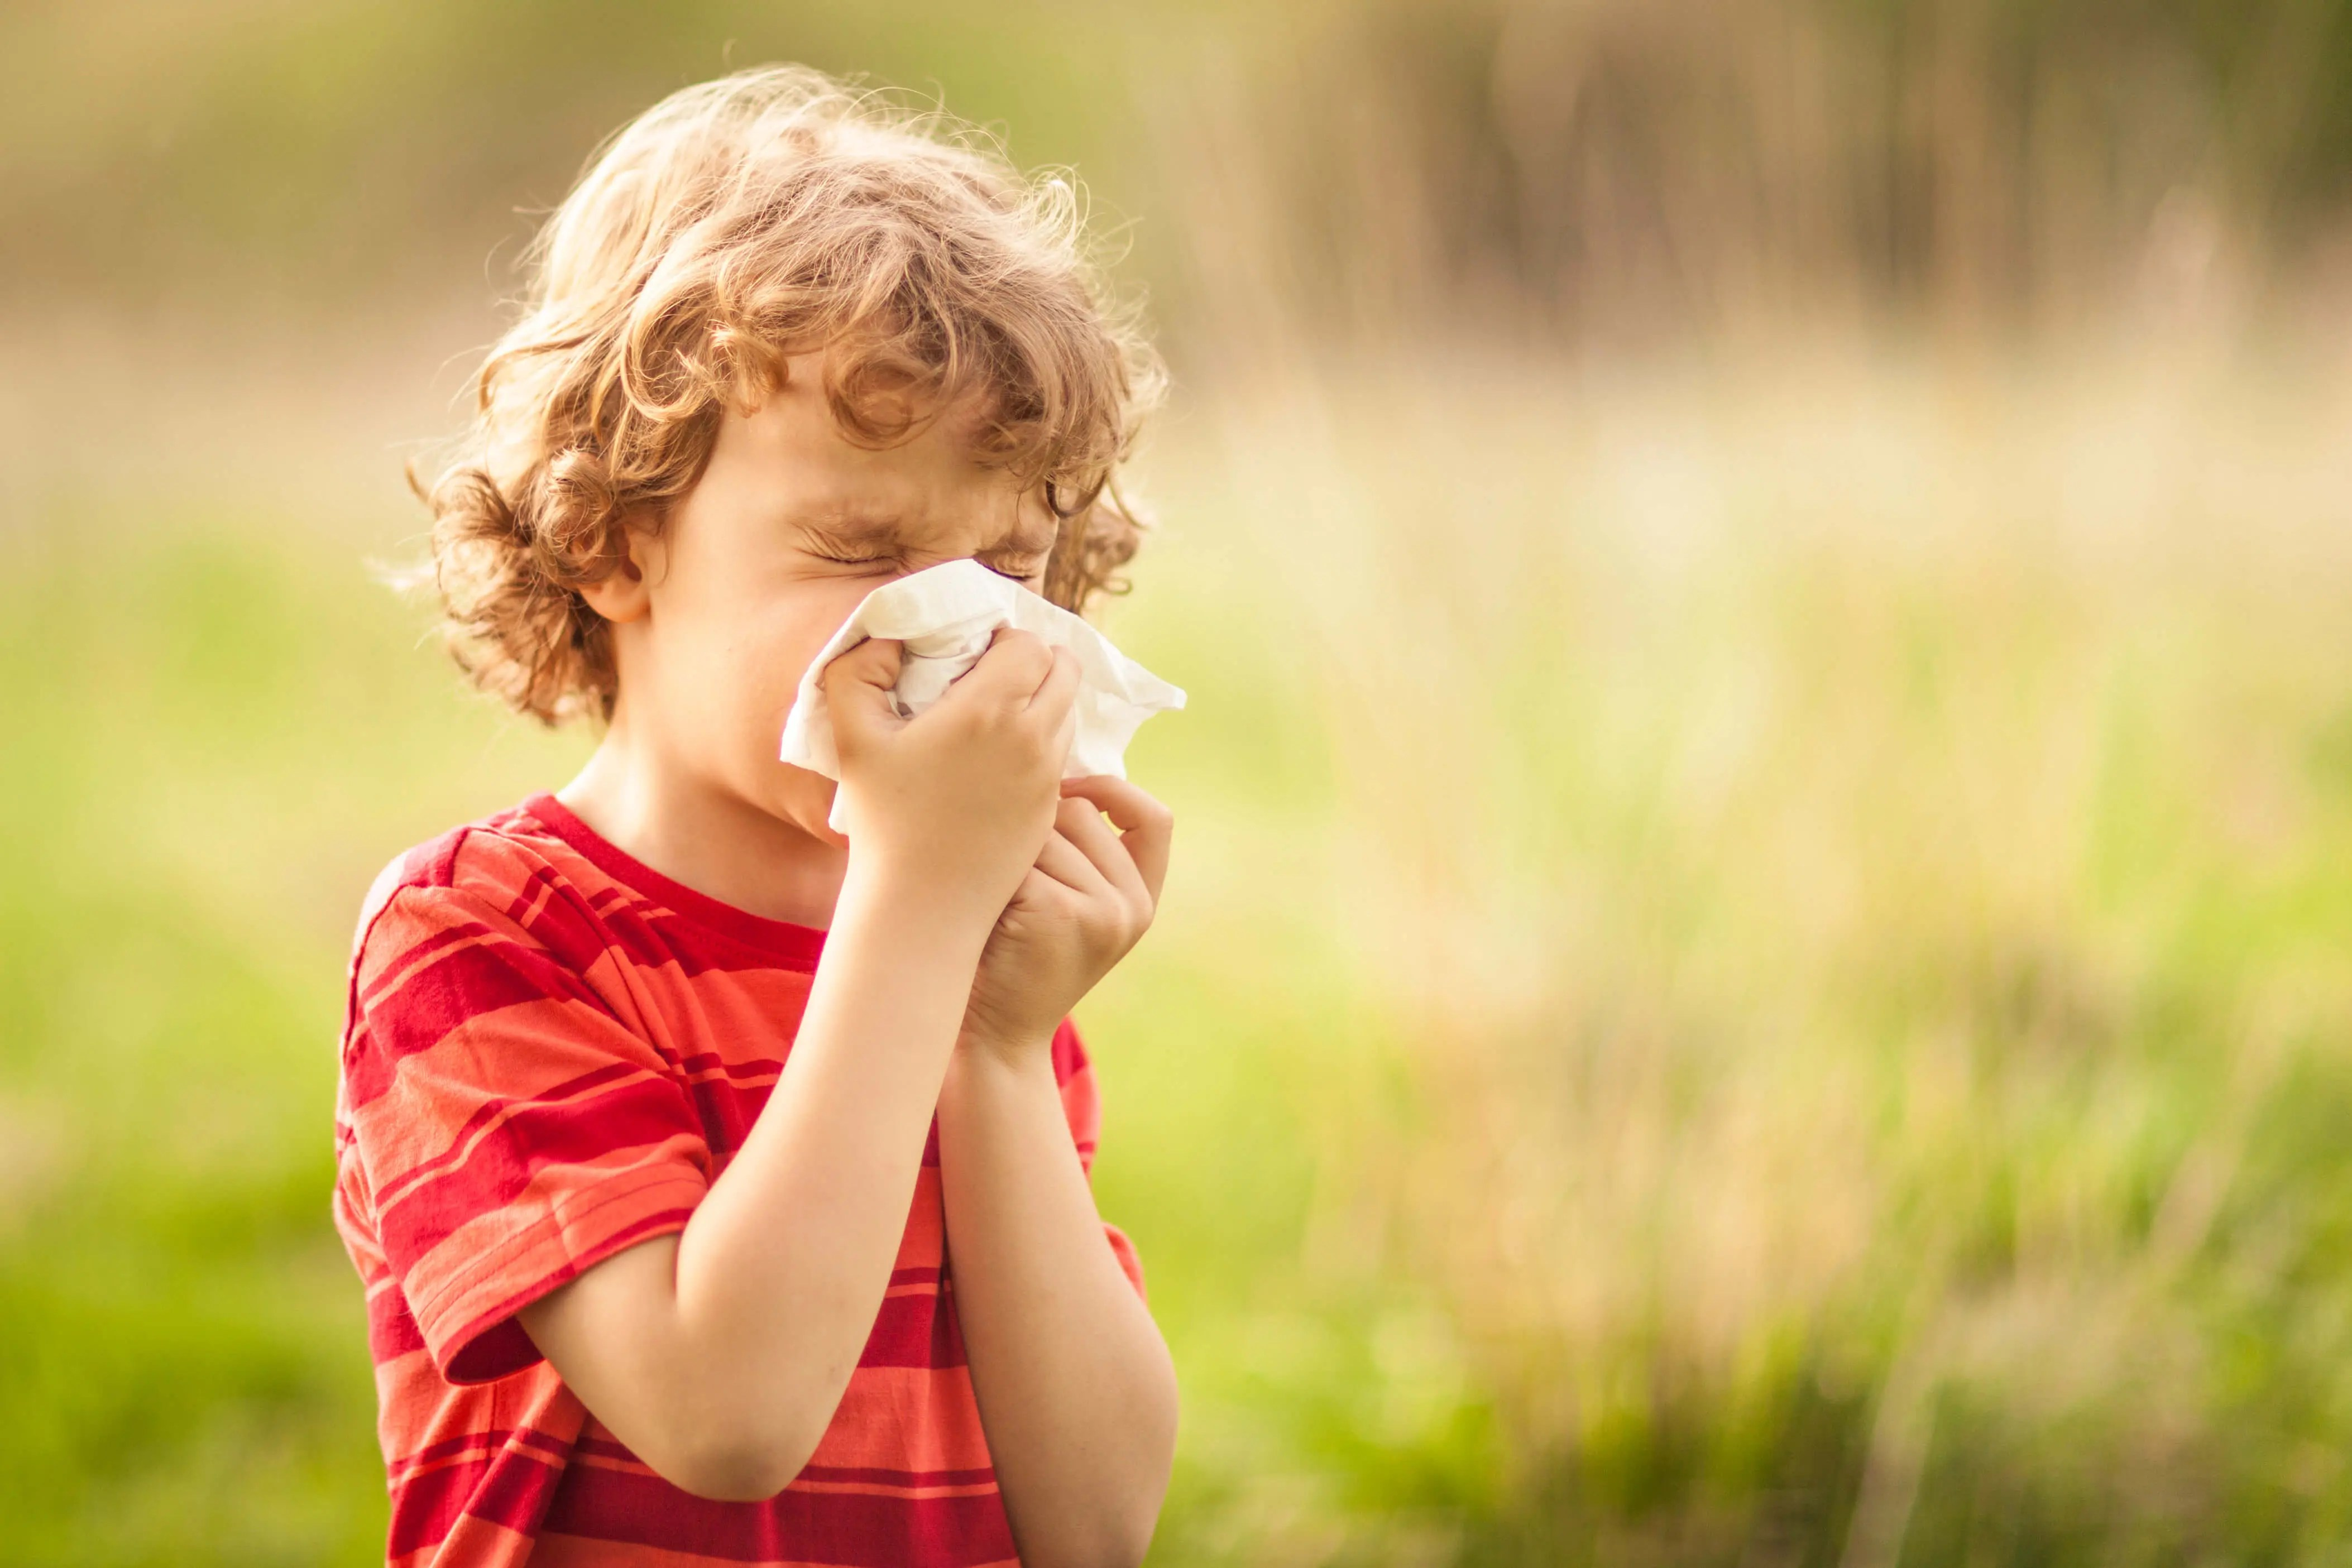 Boy sneezing in an open field due to allergies